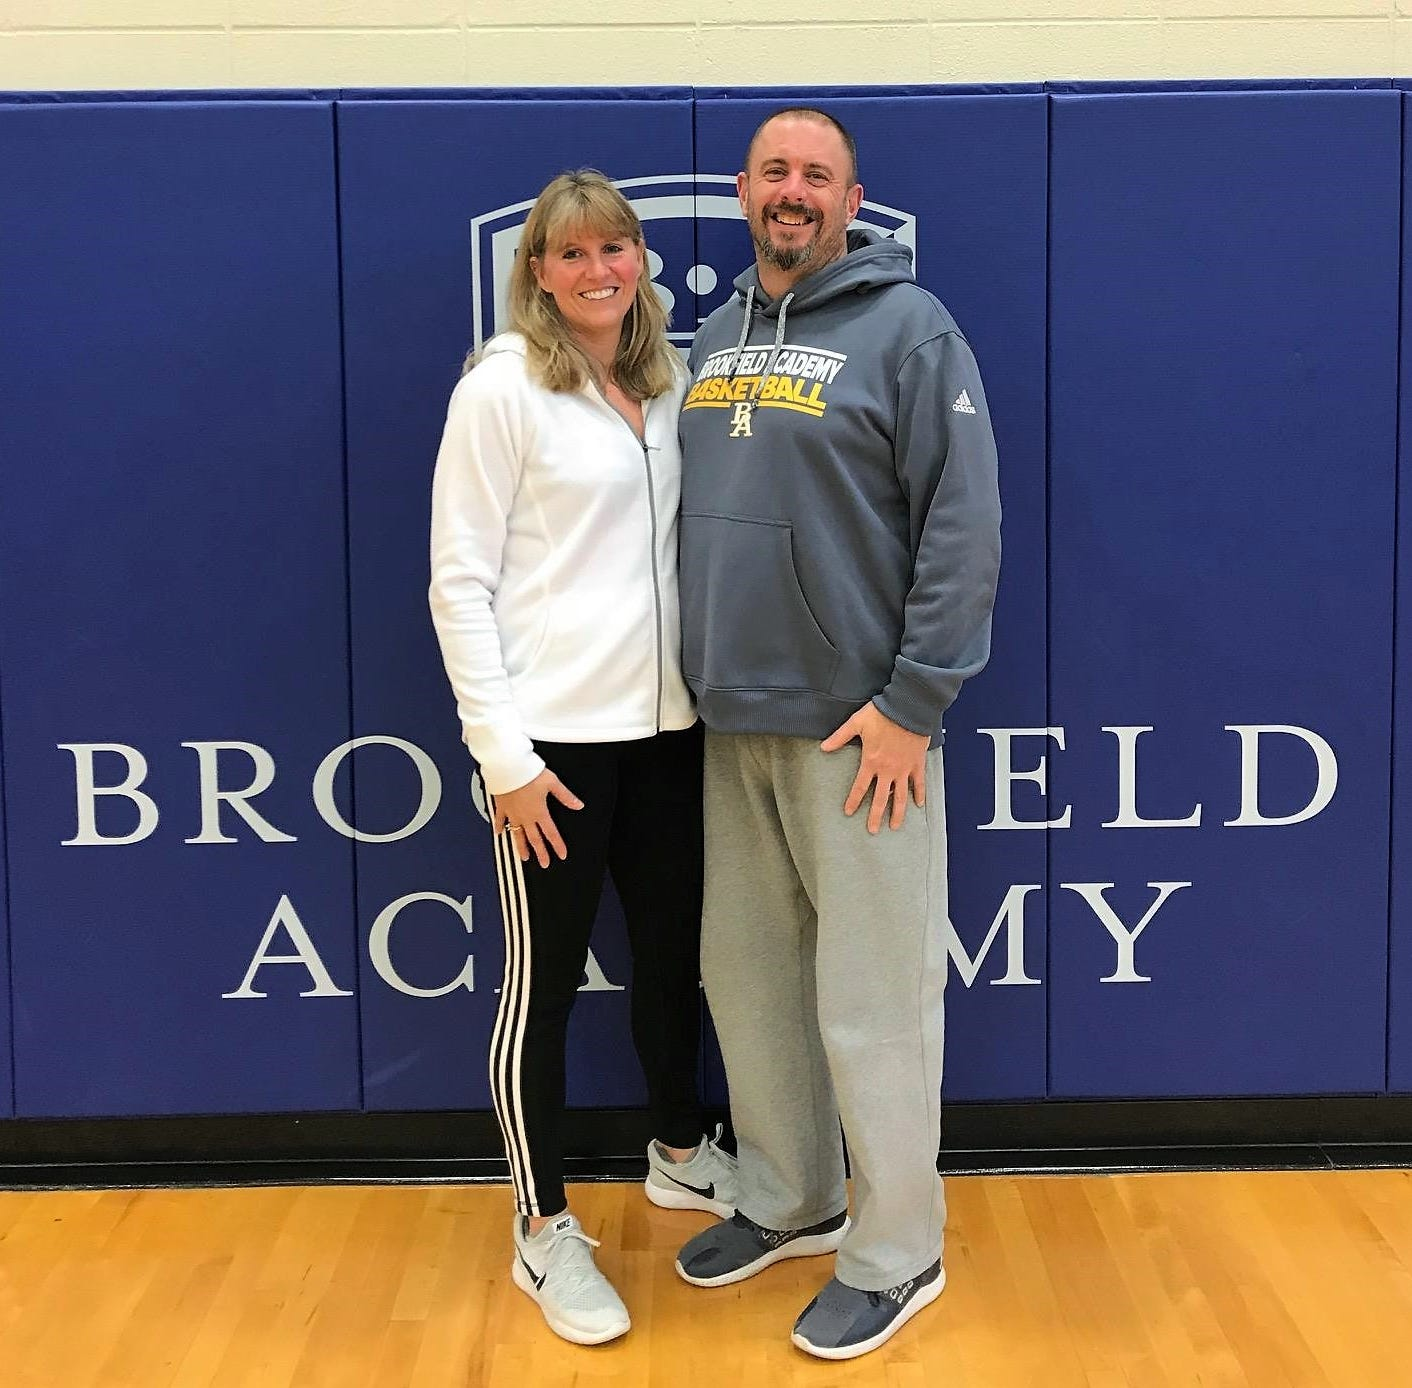 Brookfield Academy, basketball communities rally around cancer-stricken Deanna Clarey, whose husband and son lead boys team